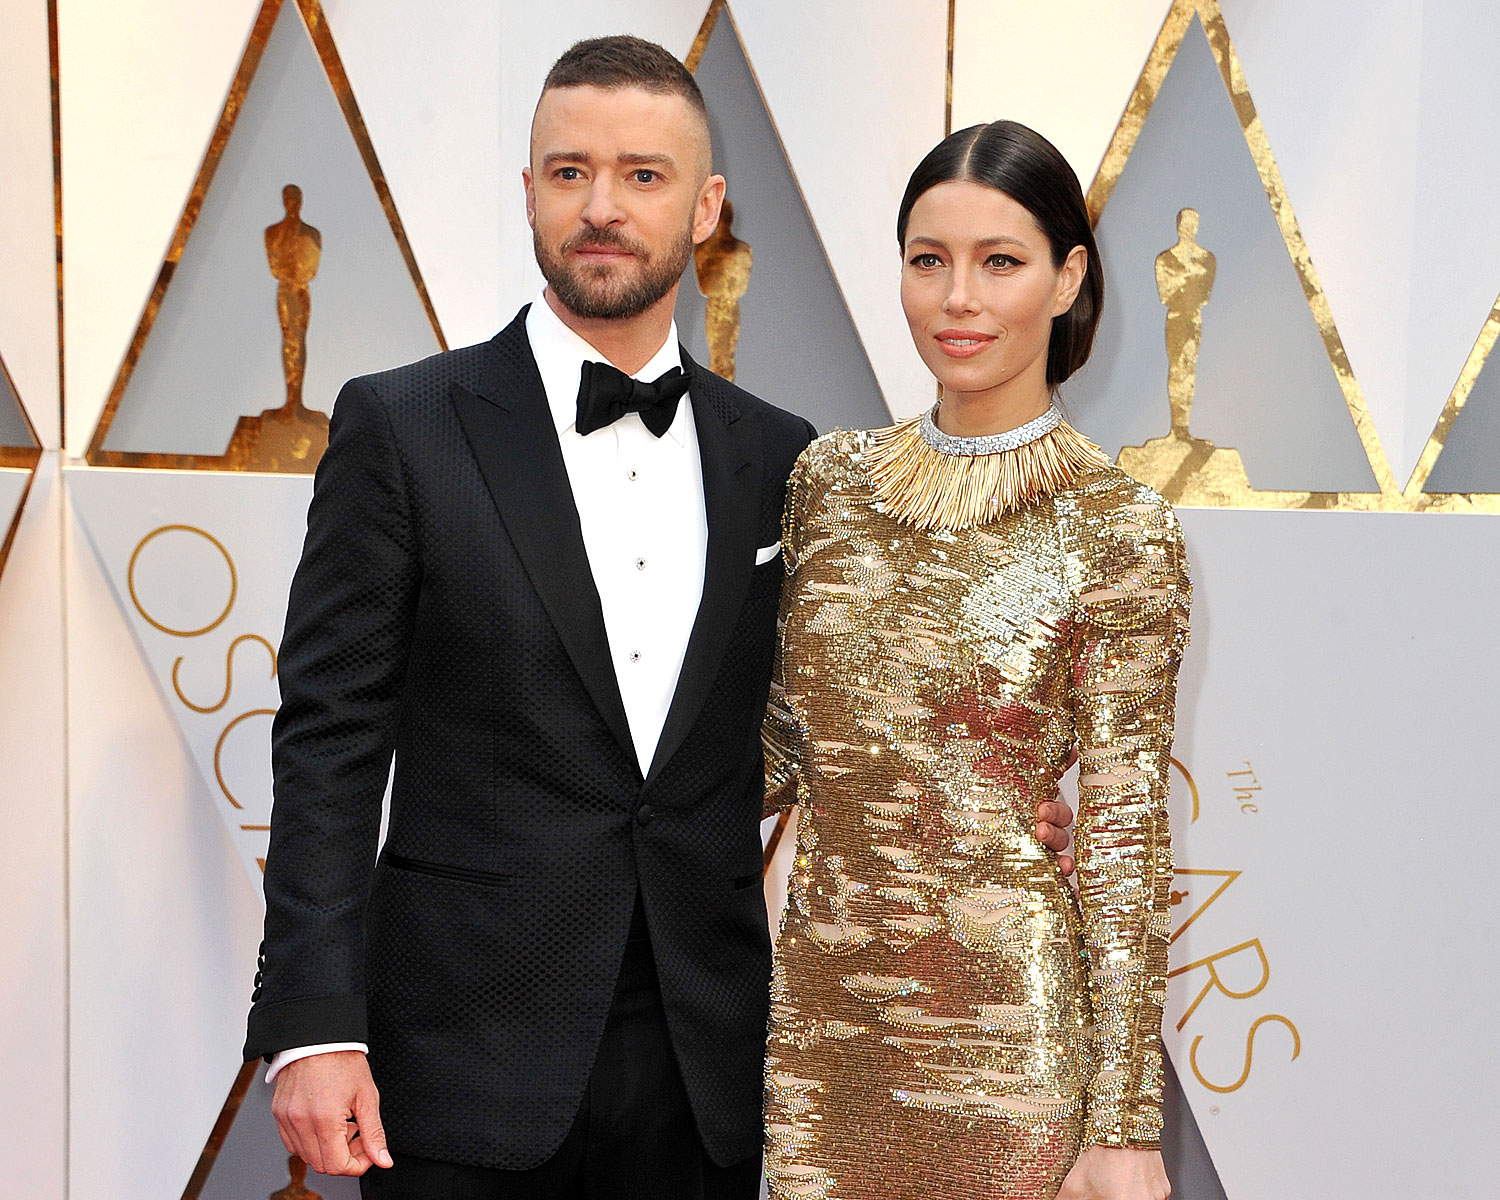 Jessica Biel Gives a Very Good Look at Her Engagement Ring From Justin Timberlake